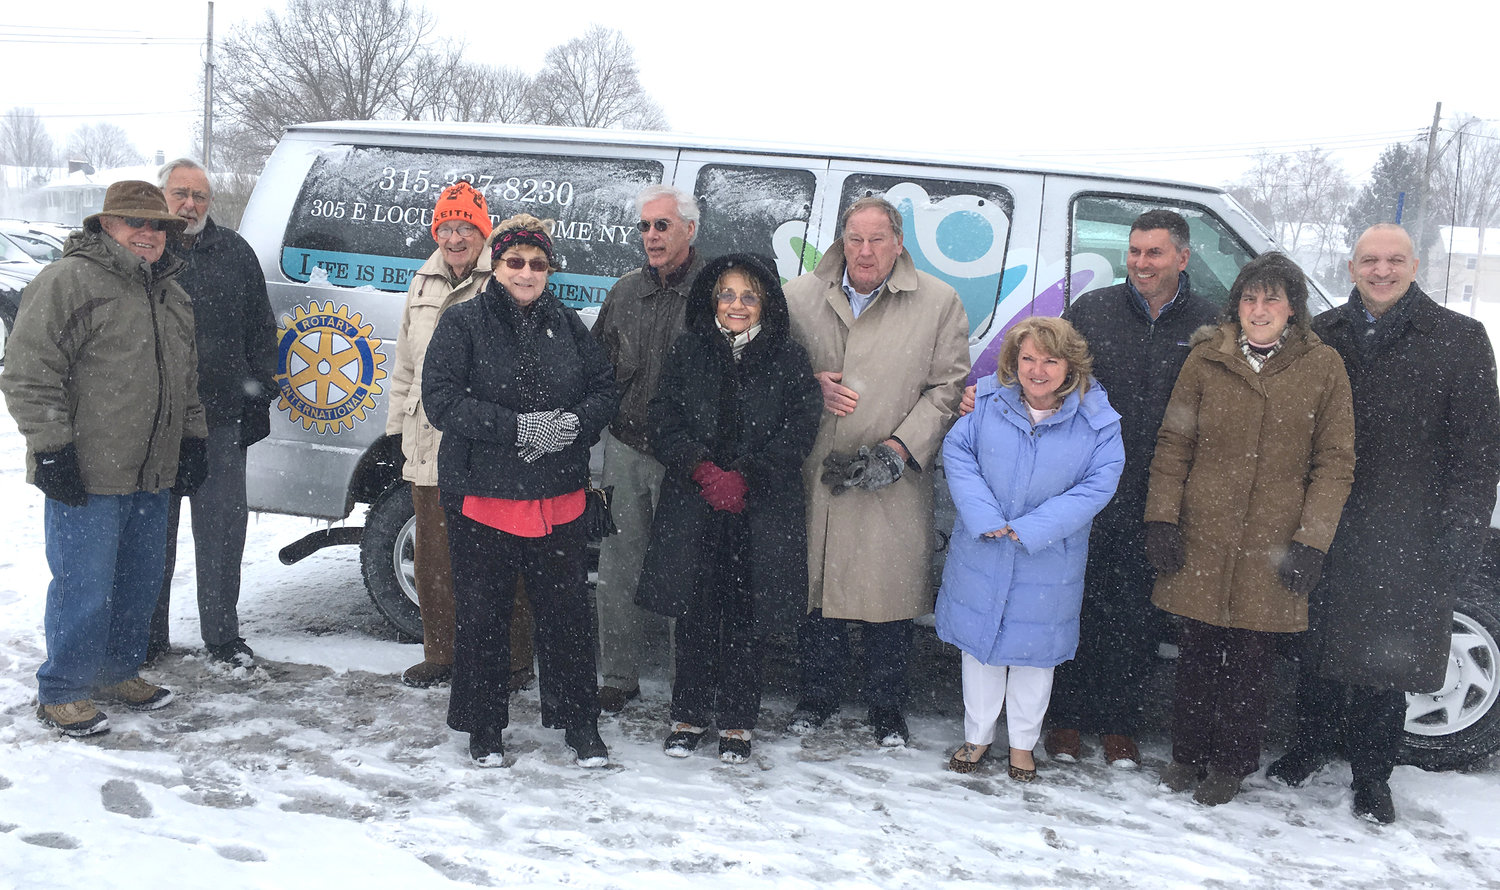 ROTARY DONATION — The Rome Rotary Club kicked off its 100th anniversary of service to the community earlier this year with the donation of an11-passenger van to the Copper City Community Connection in January. Above, officials from the Rome Rotary Club and the CCCC gather to celebrate the donation.